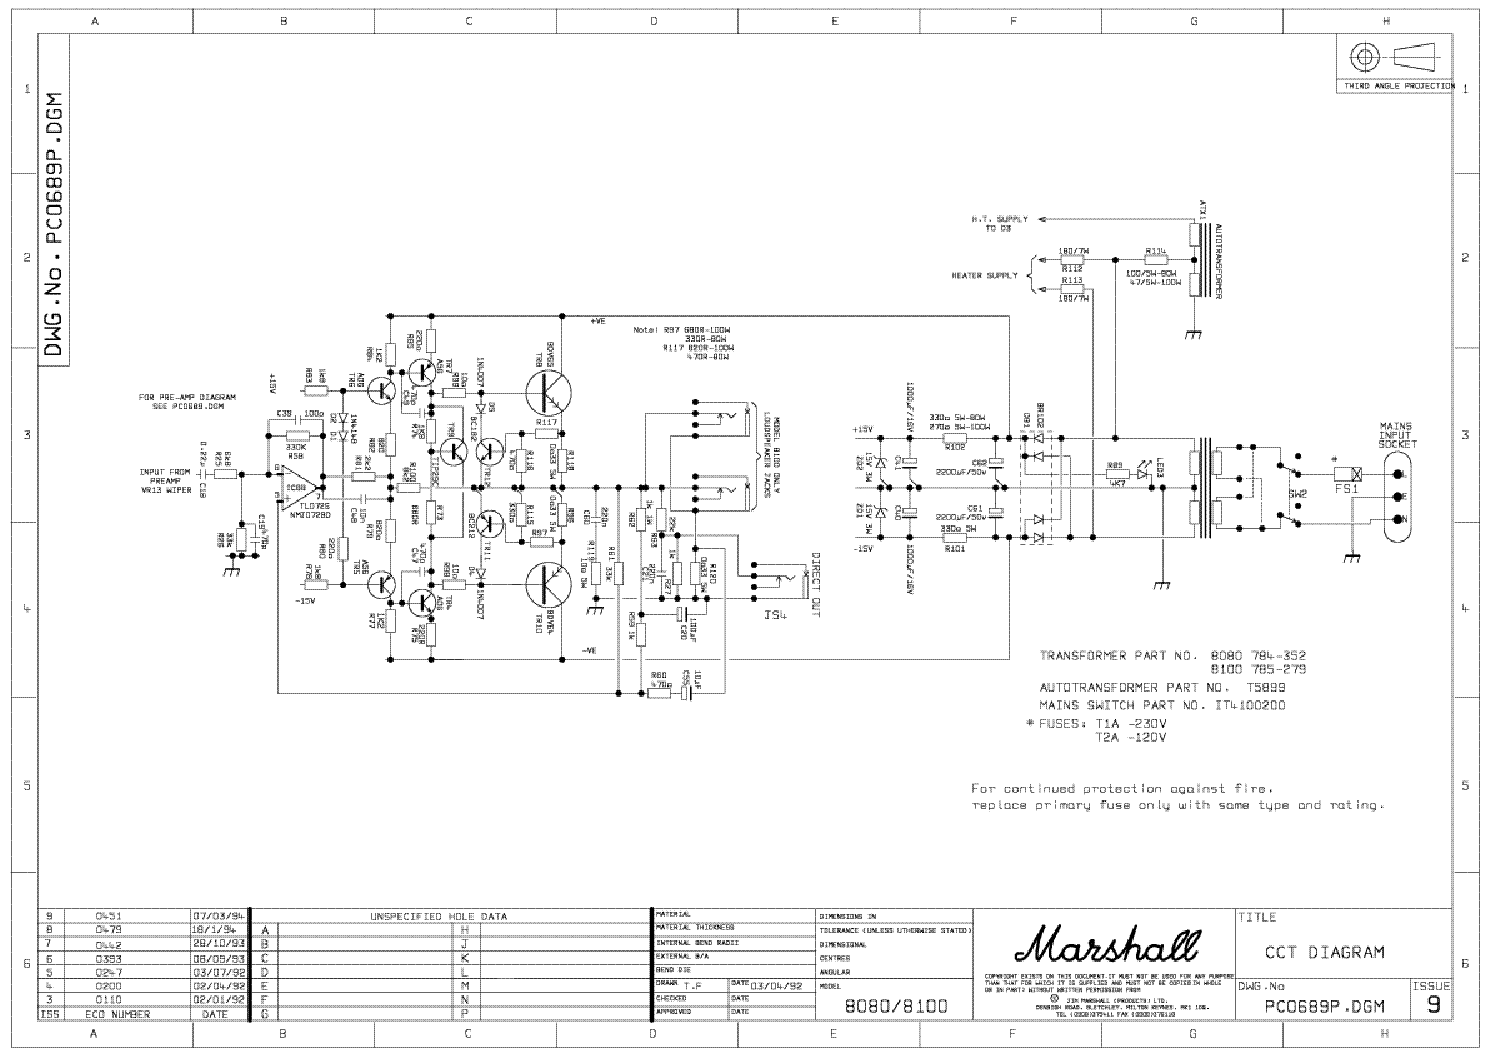 MARSHALL 8080 8100 VALVESTATE PC0689 SCH Service Manual ... on circuit diagram, marshall tsl 100 first design, marshall jcm 900 layout, tube map, functional flow block diagram, technical drawing, marshall parts list, one-line diagram, piping and instrumentation diagram, block diagram, marshall jcm pre amp, marshall plexi tubes,